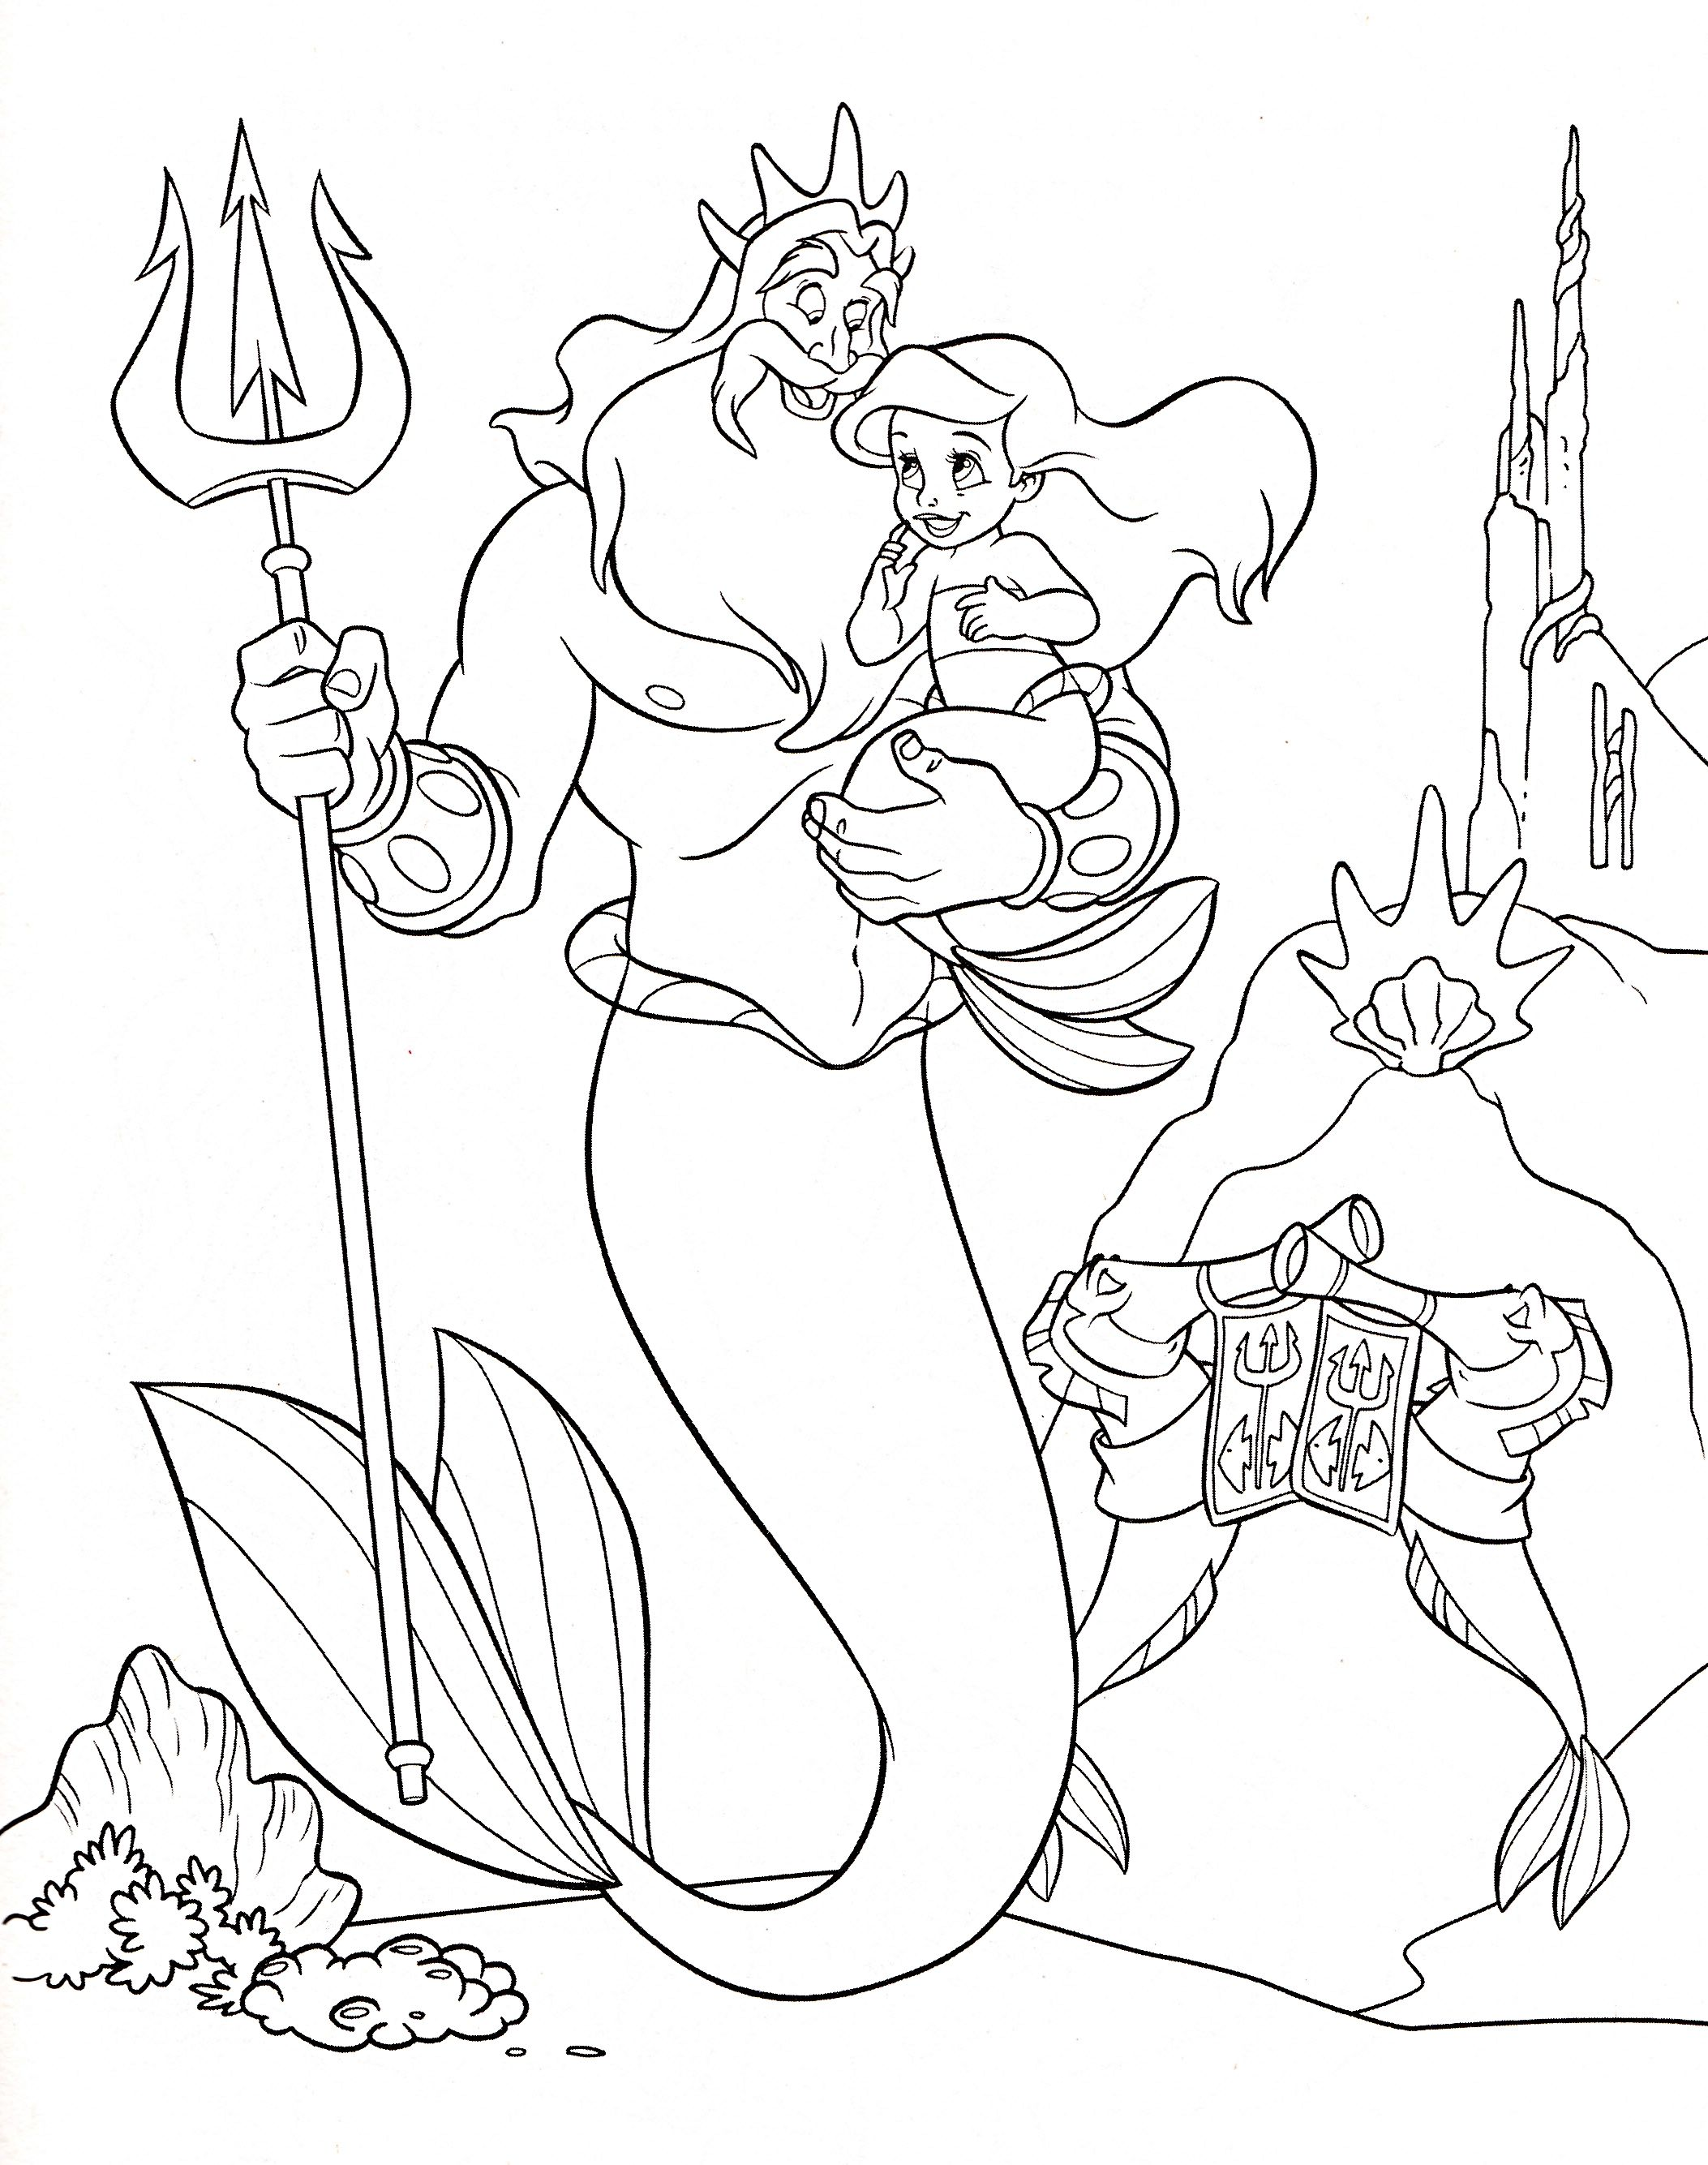 Coloring pictures disney characters - Walt Disney Coloring Page Of King Triton And Princess Ariel From The Little Mermaid Ariel S Beginning Hd Wallpaper And Background Photos Of Walt Disney